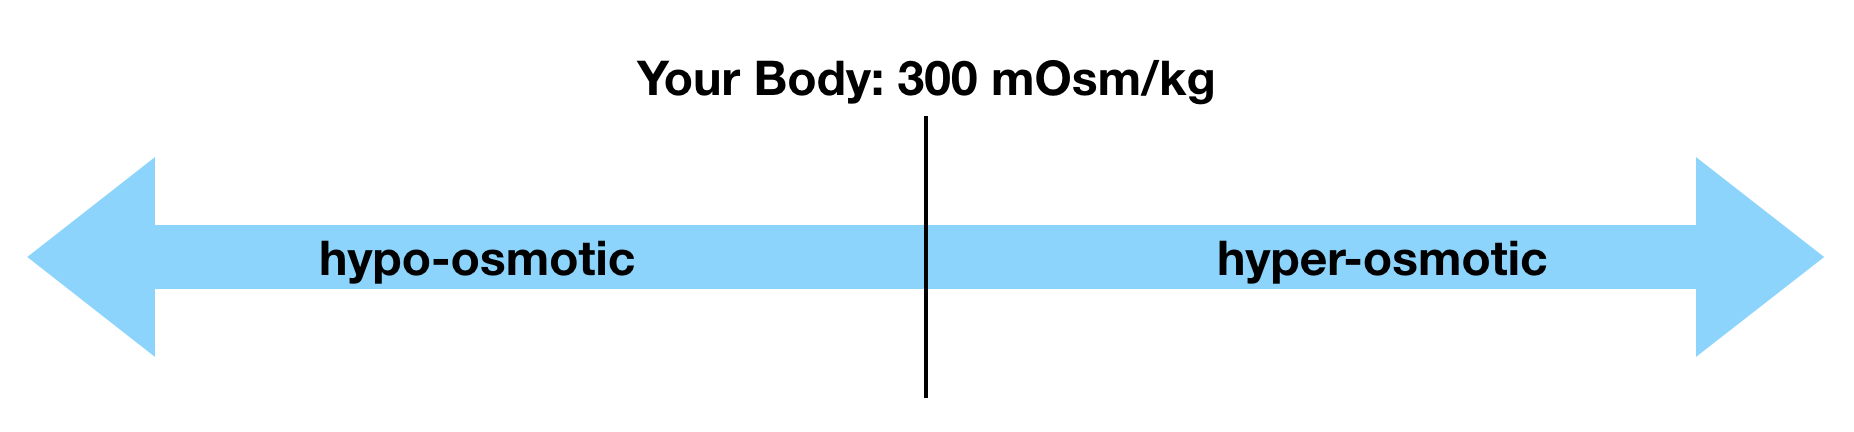 A scale of osmolality, with your body's 300 mOsm/kg in the center.